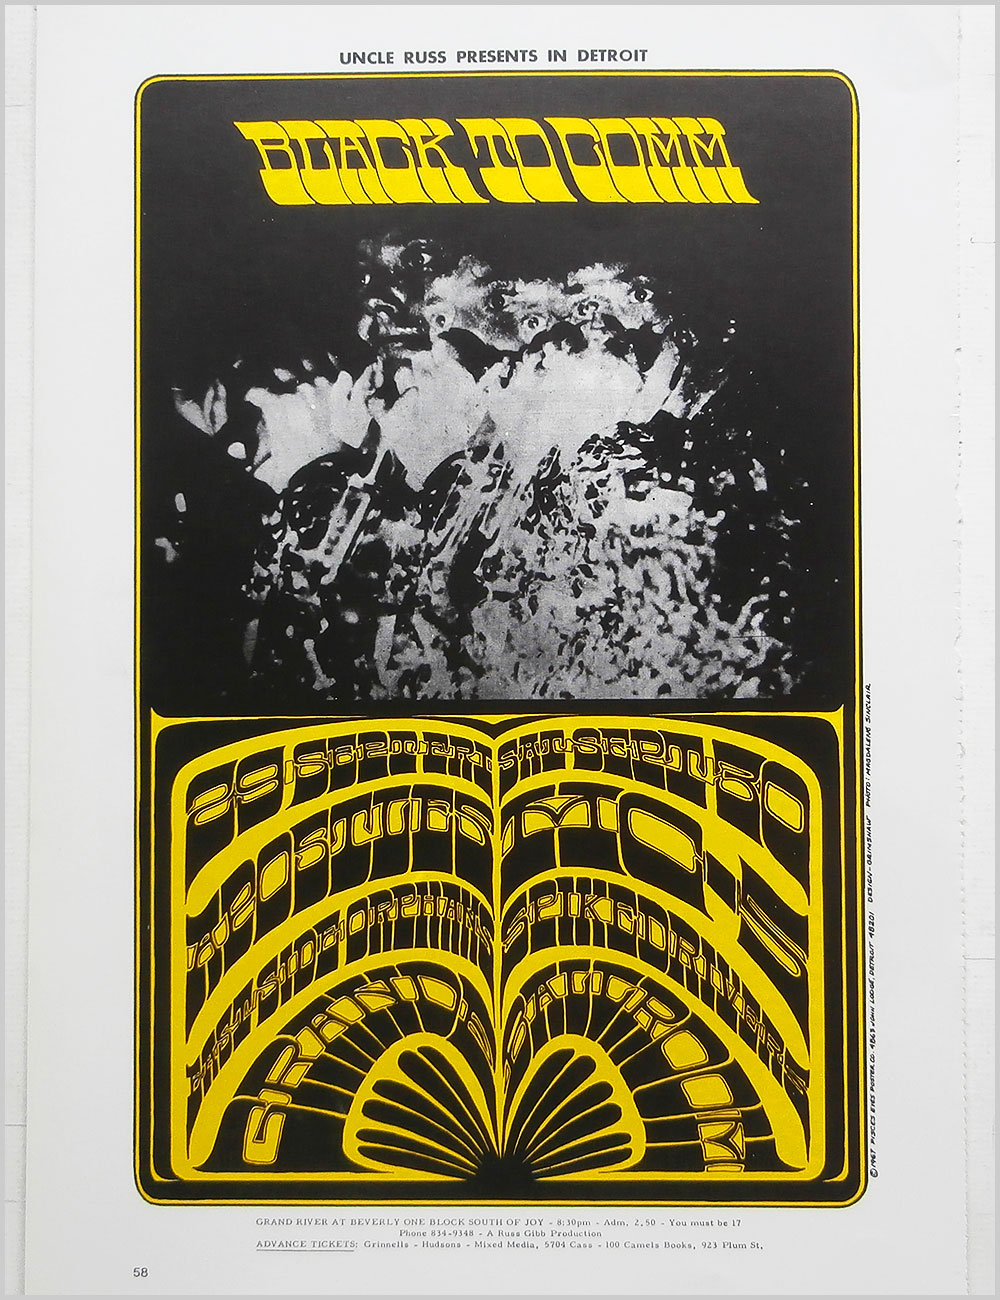 Leonard Cohen and MC5, Chuck Berry, Sun Ra - Rock Poster: Leonard Cohen: Live Songs b/w MC5, Chuck Berry, Sun Ra: Detroit Rock and Roll Revival (PB100292)